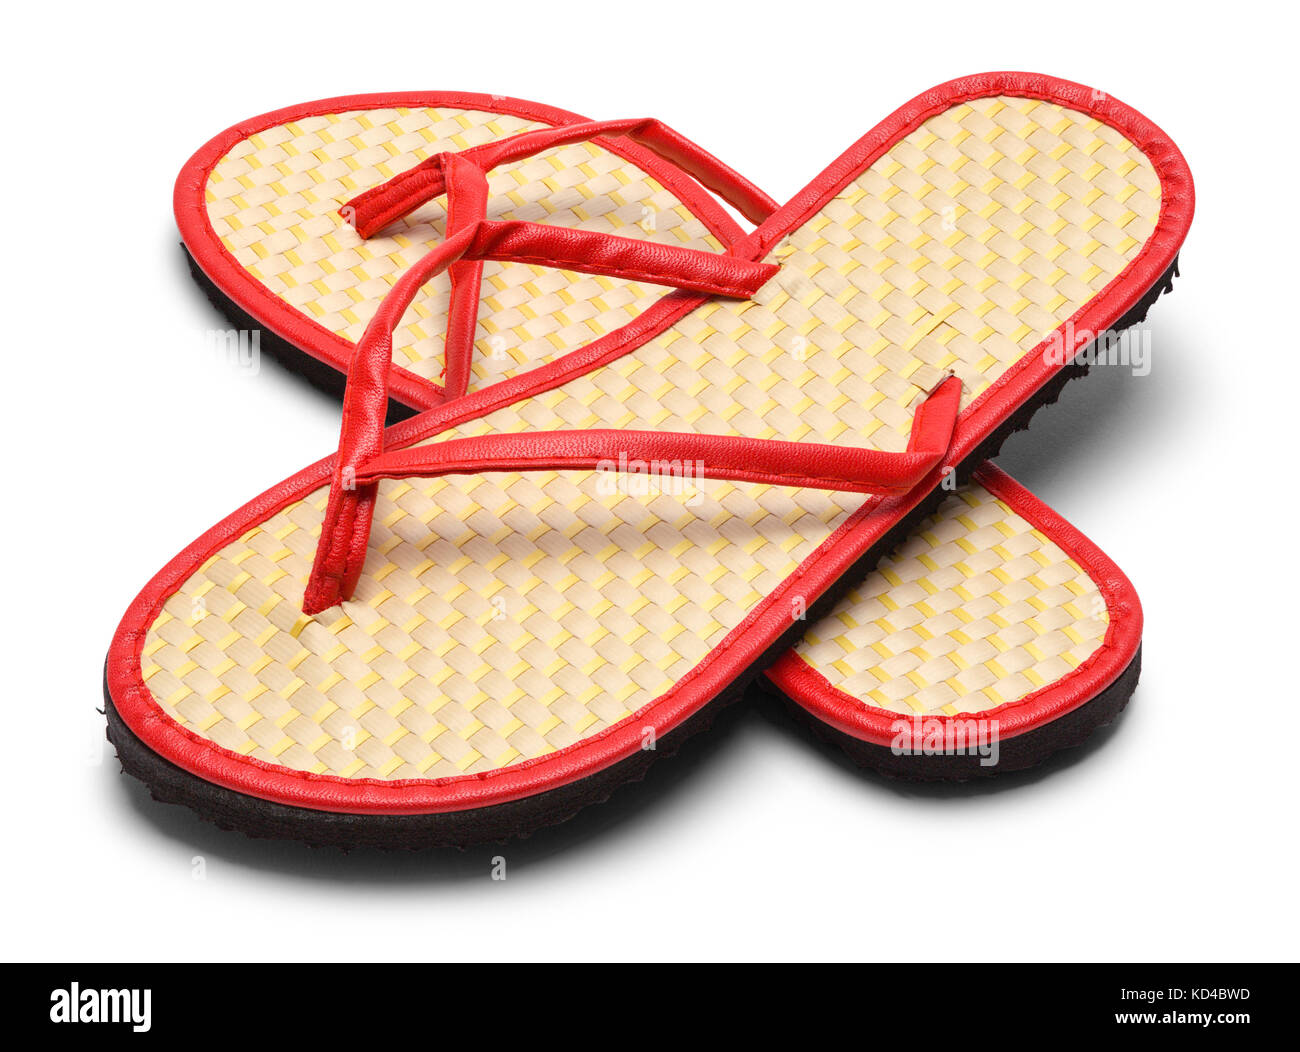 Pair of Woven Flip Flops Isolated on a White Background. - Stock Image